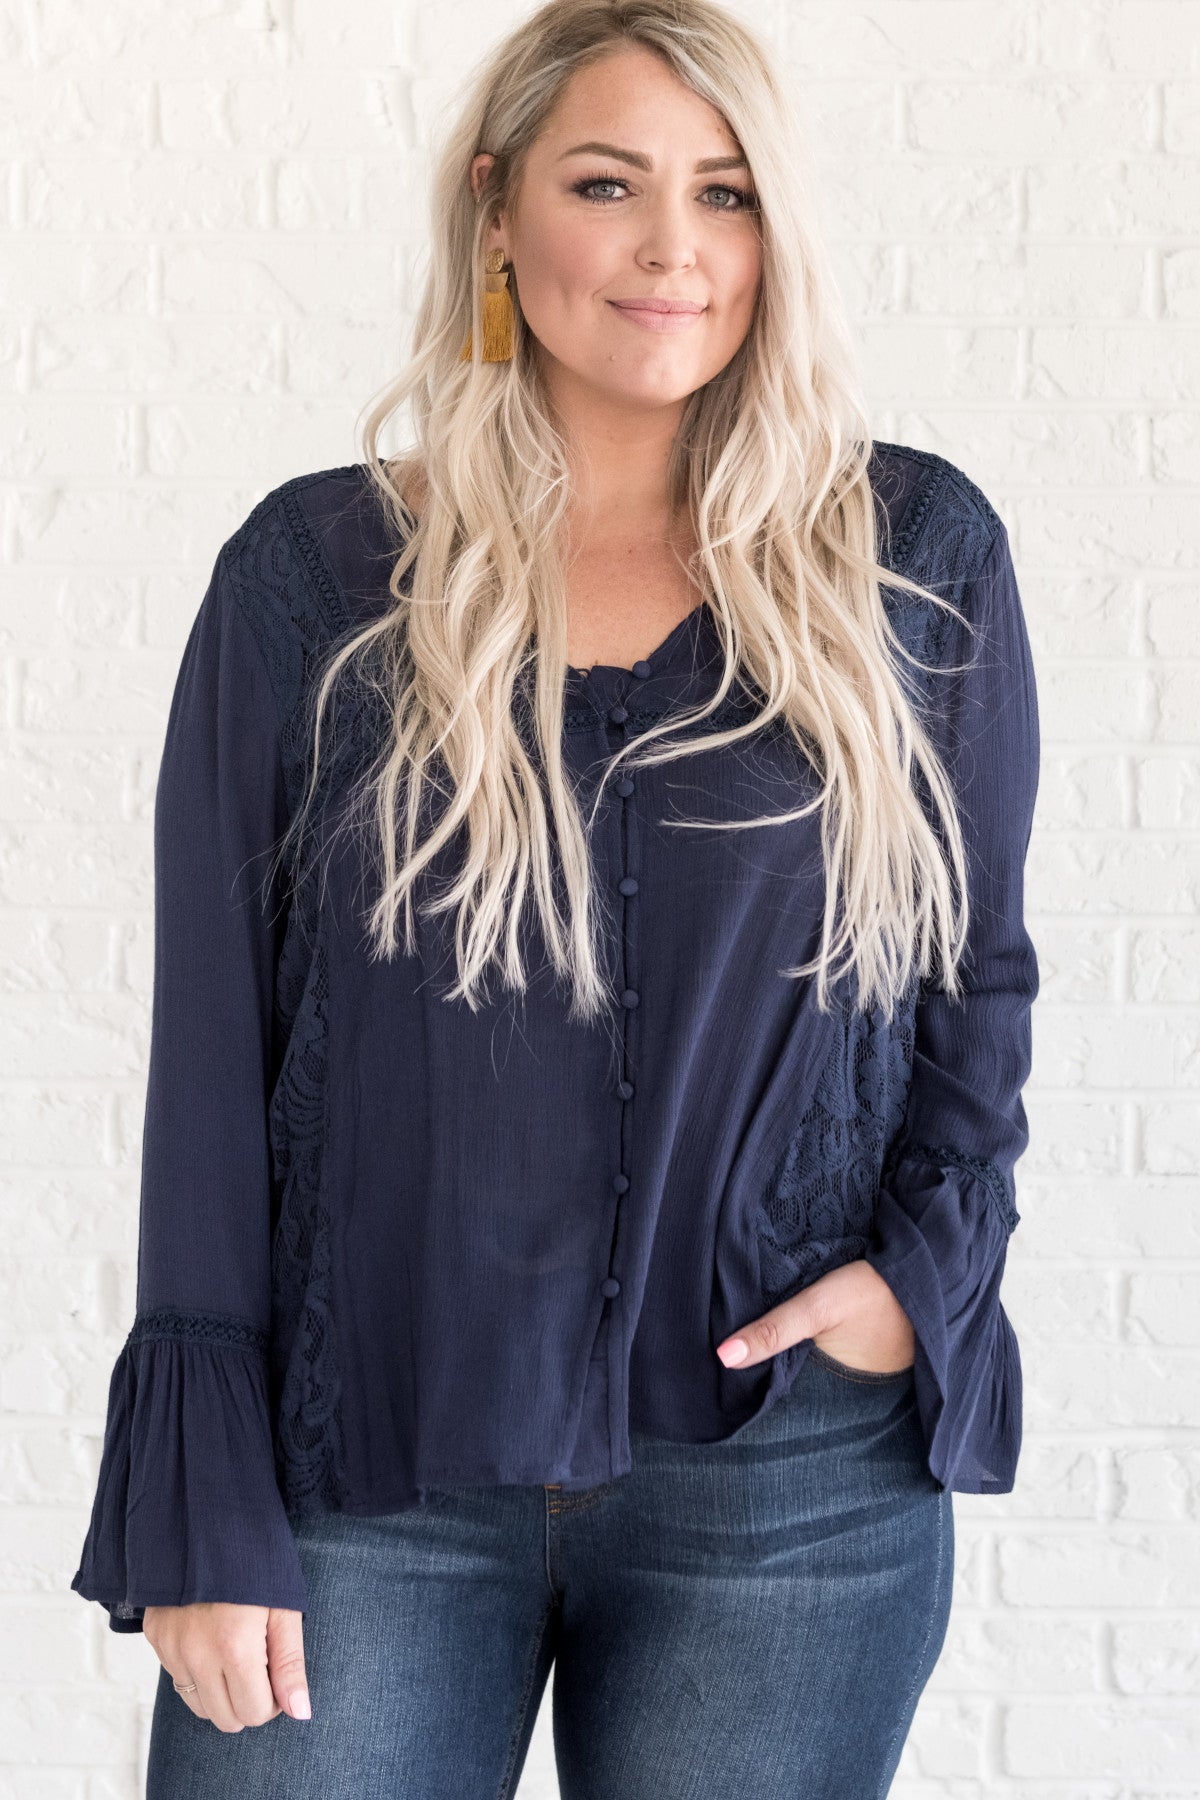 High Class Navy Blue Blouse Plus Size Blouses For Women